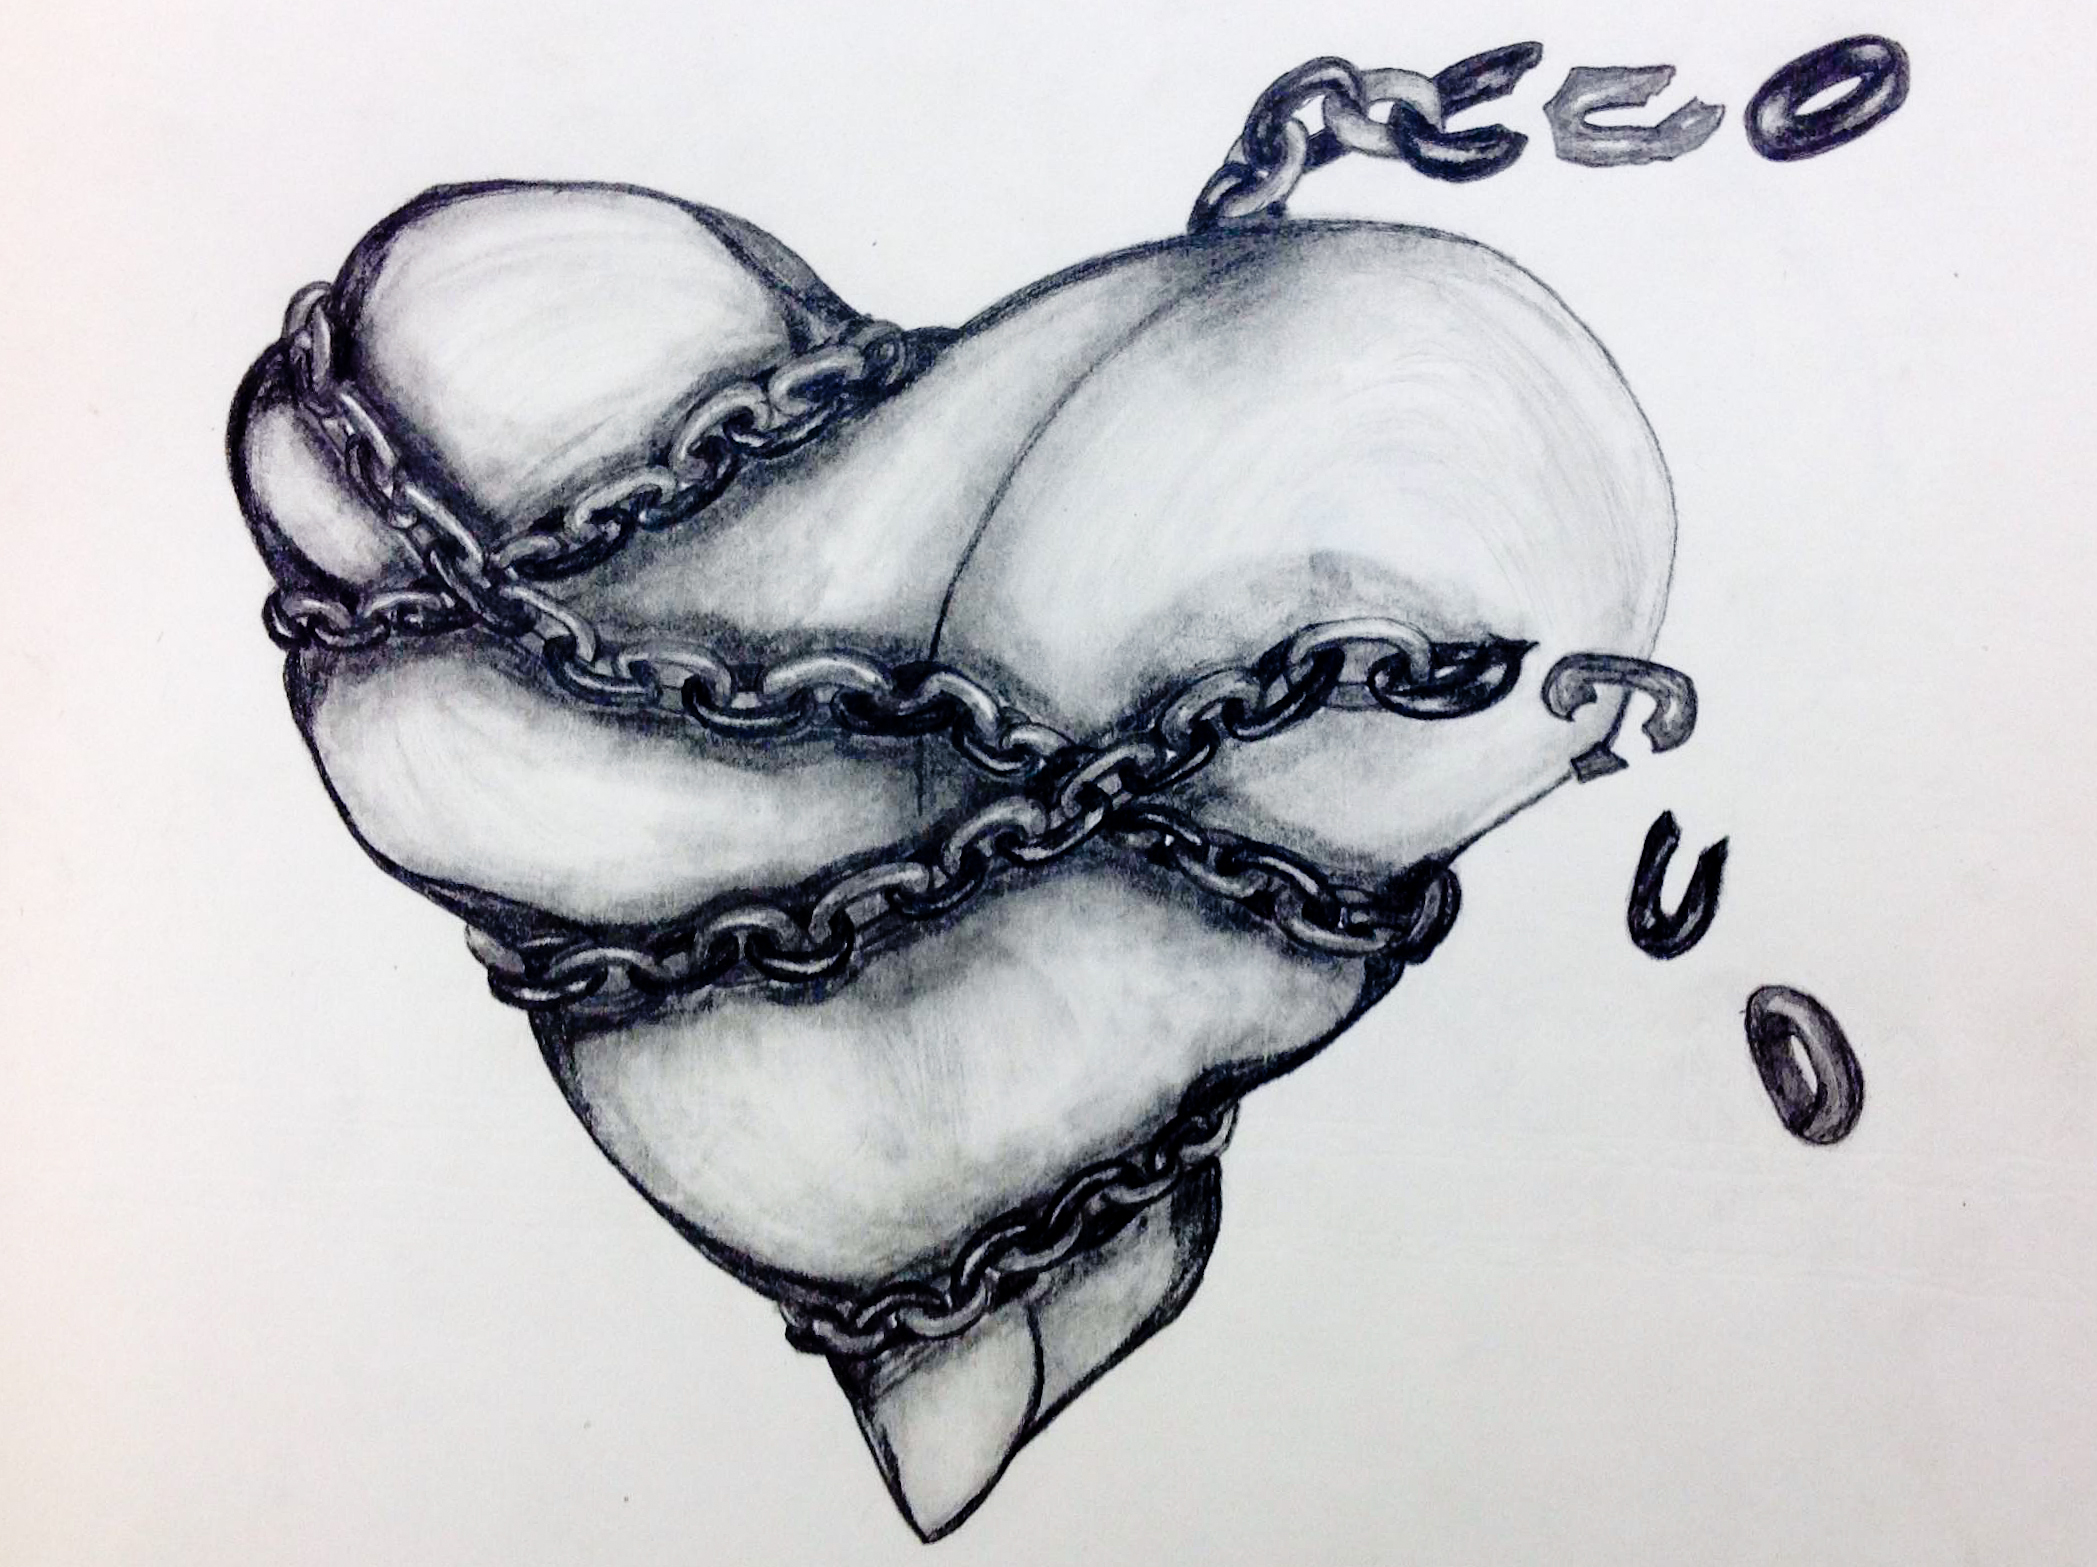 Broken Chain Drawing at GetDrawings.com.